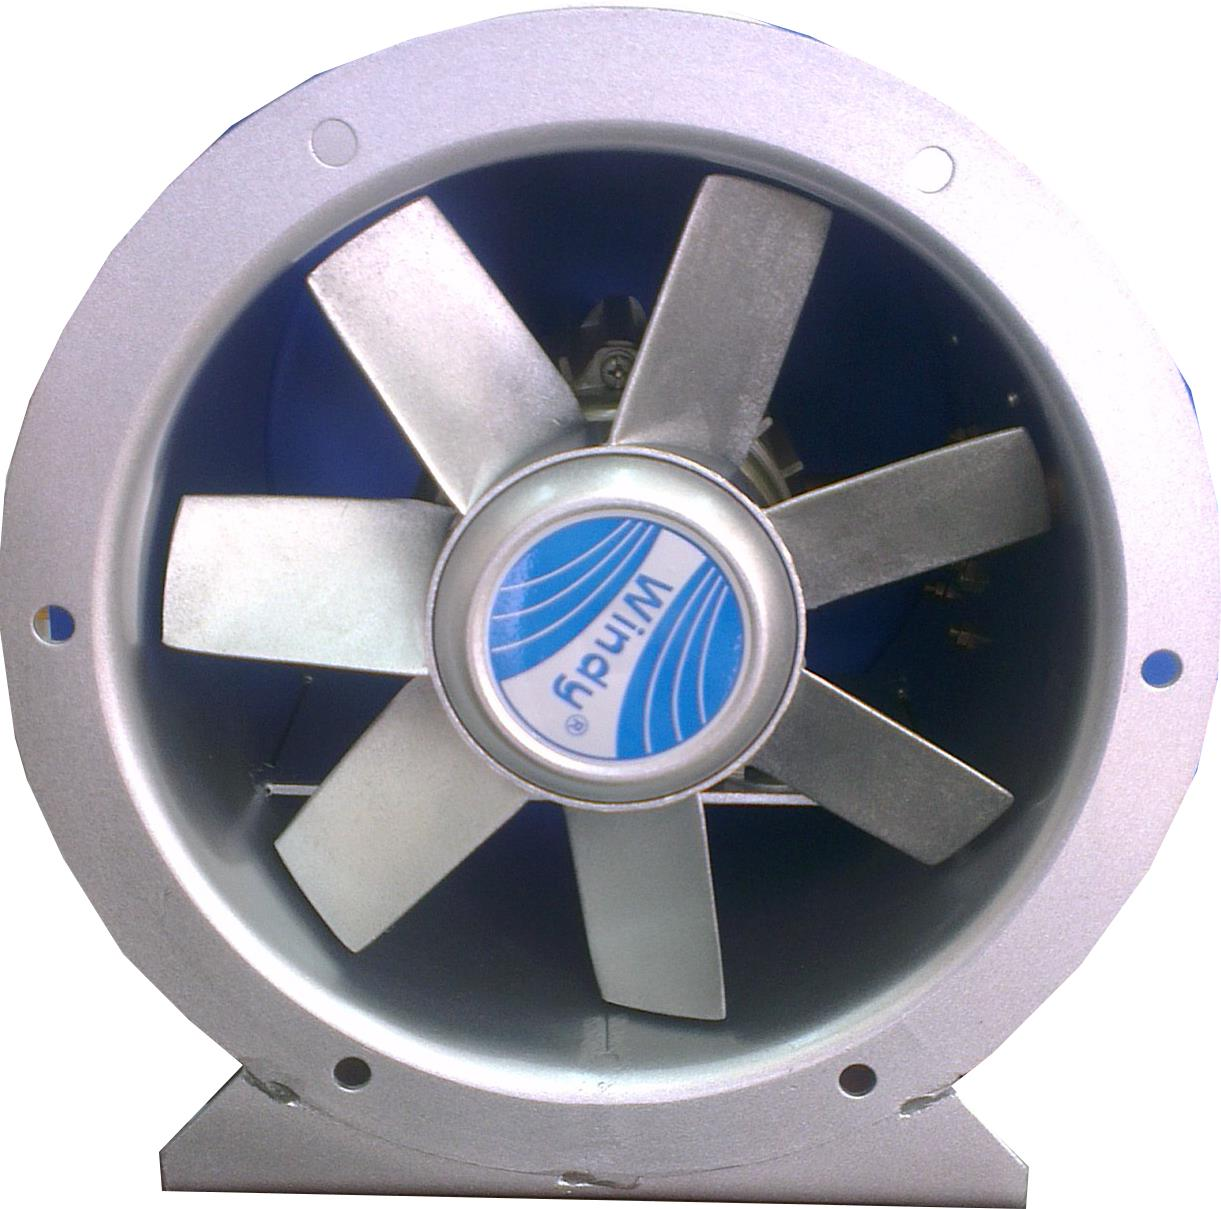 Axial Axial Blower Fans : Fans windy axial fan